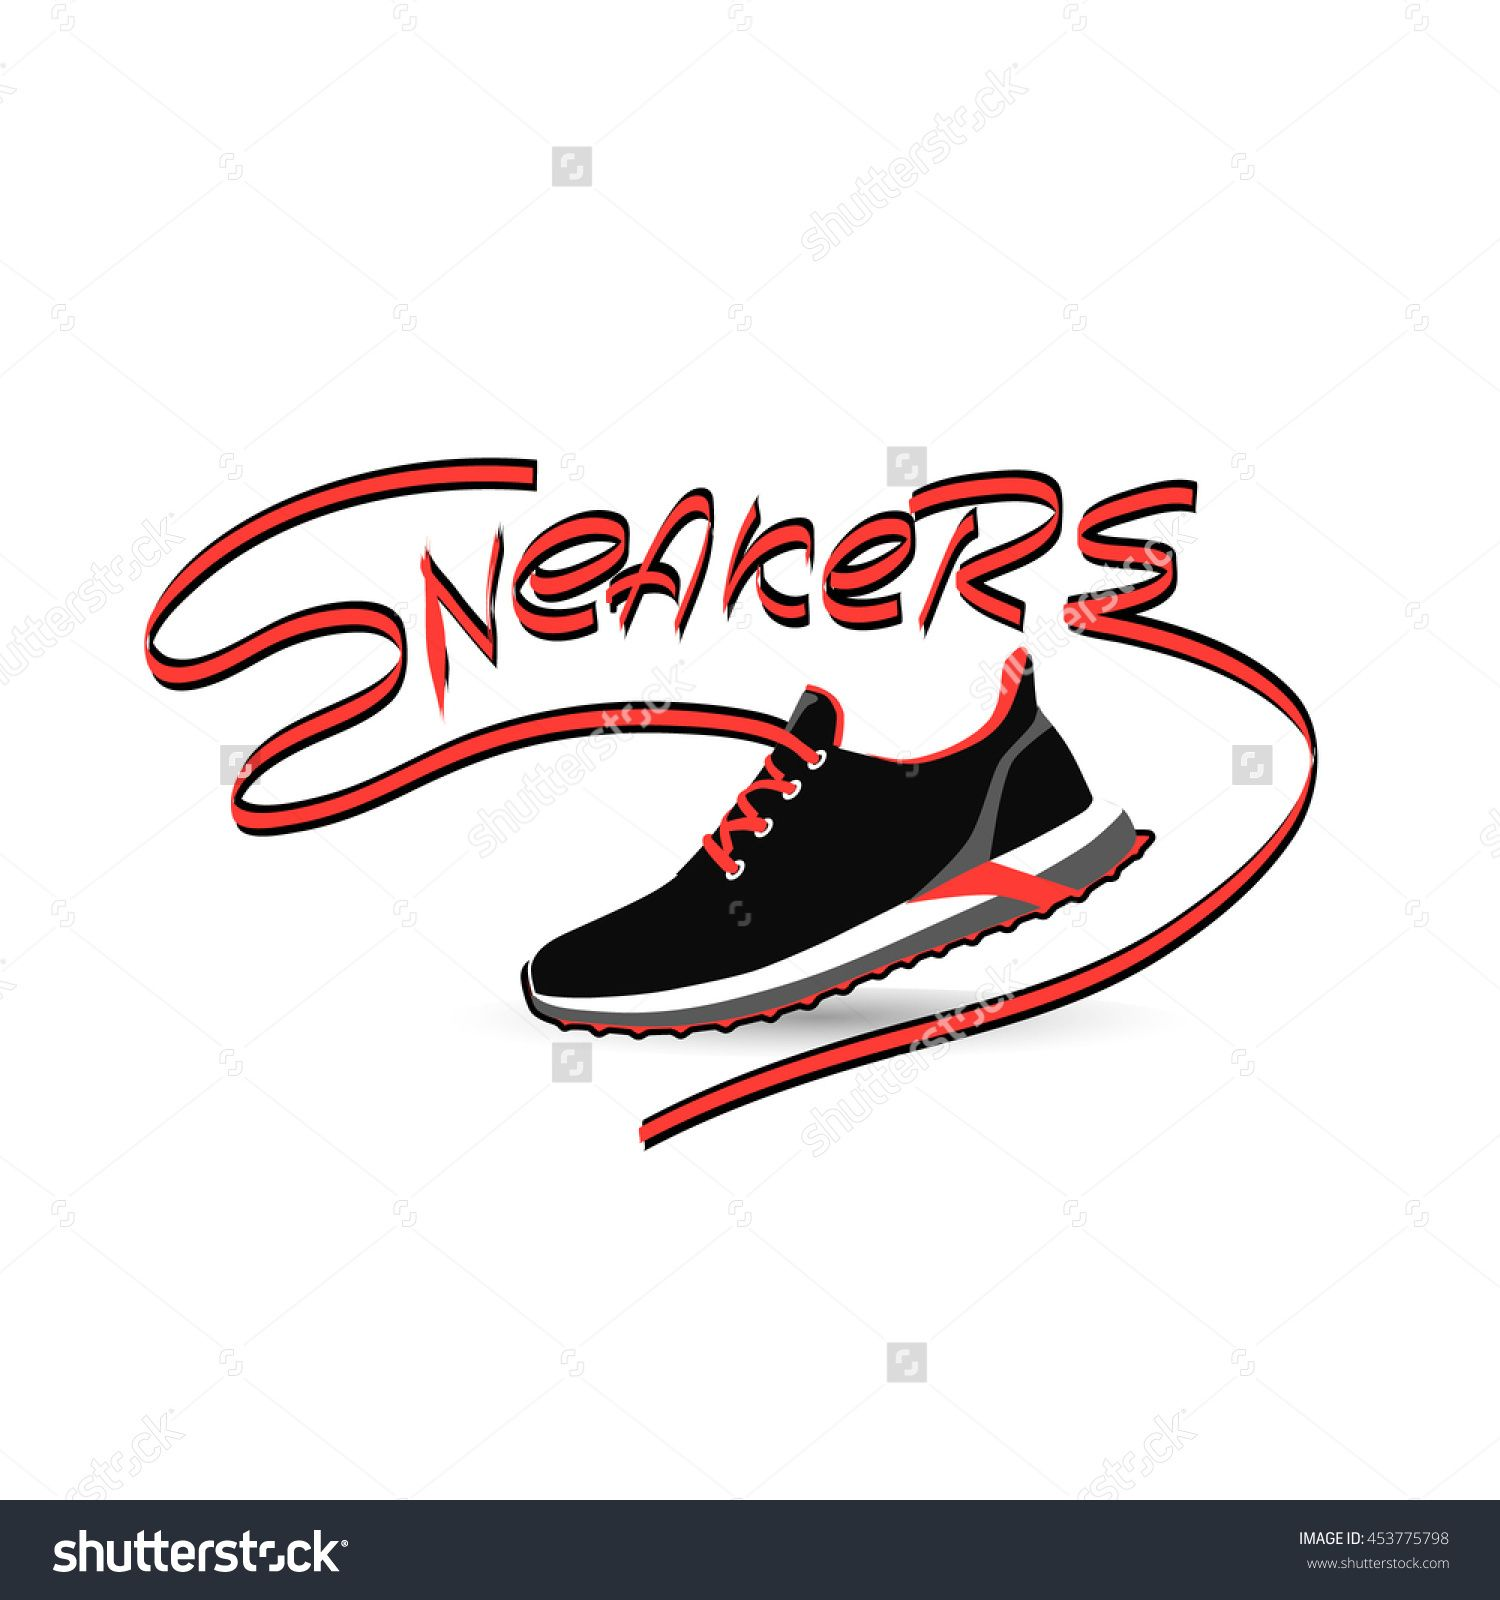 Running shoe or sneakers icon or symbol. Vector